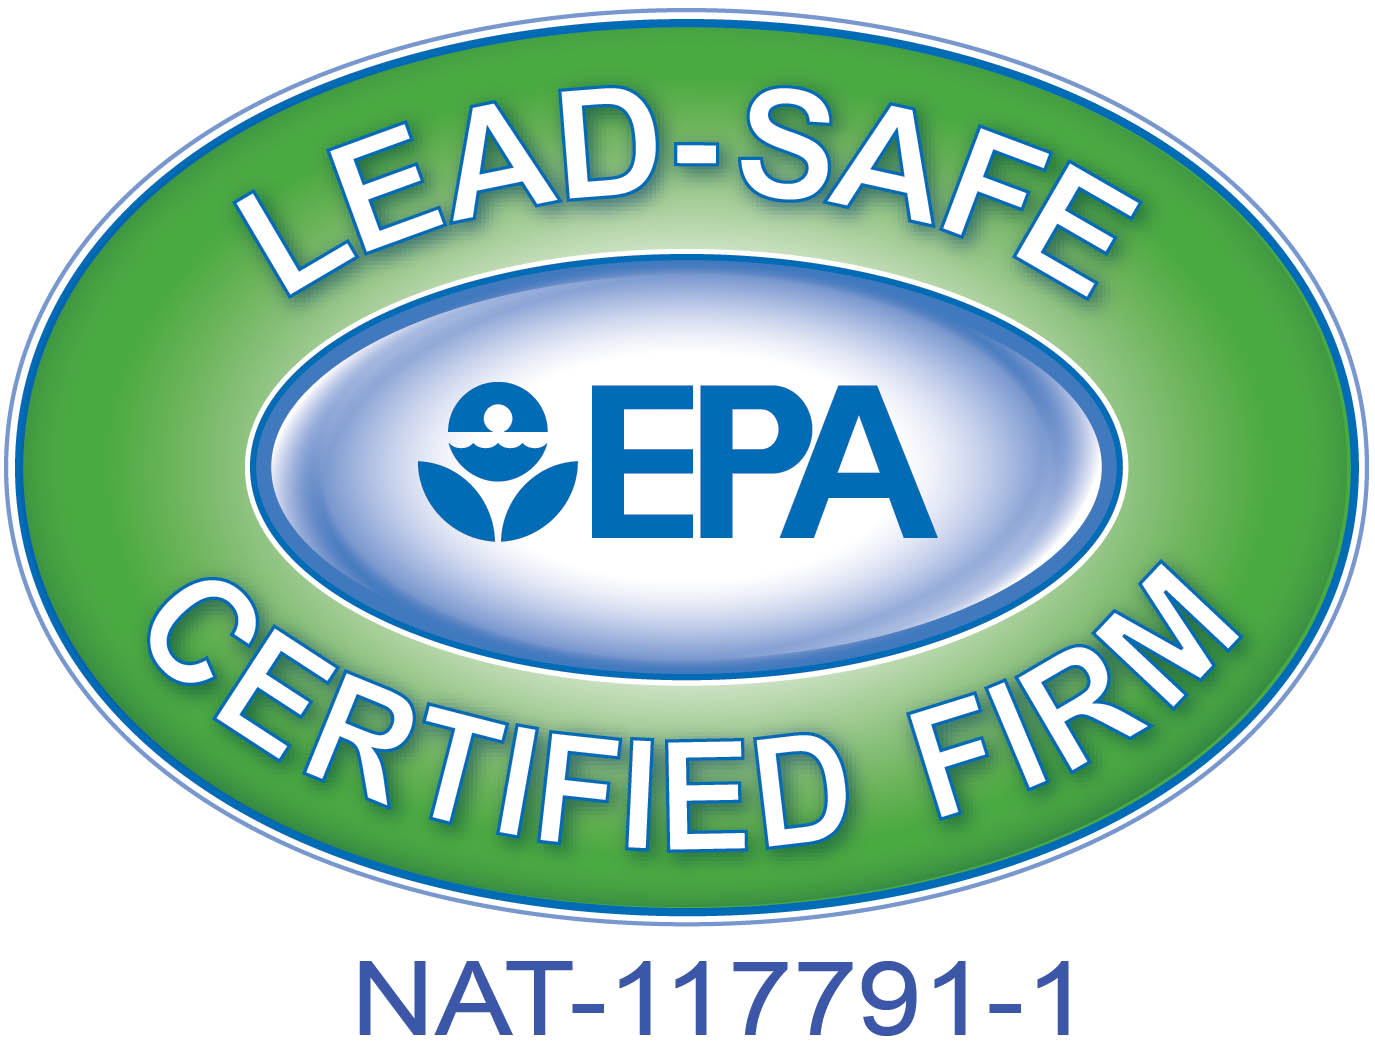 Logo: Lead-Safe certified firm with E.P.A. logo in the center.